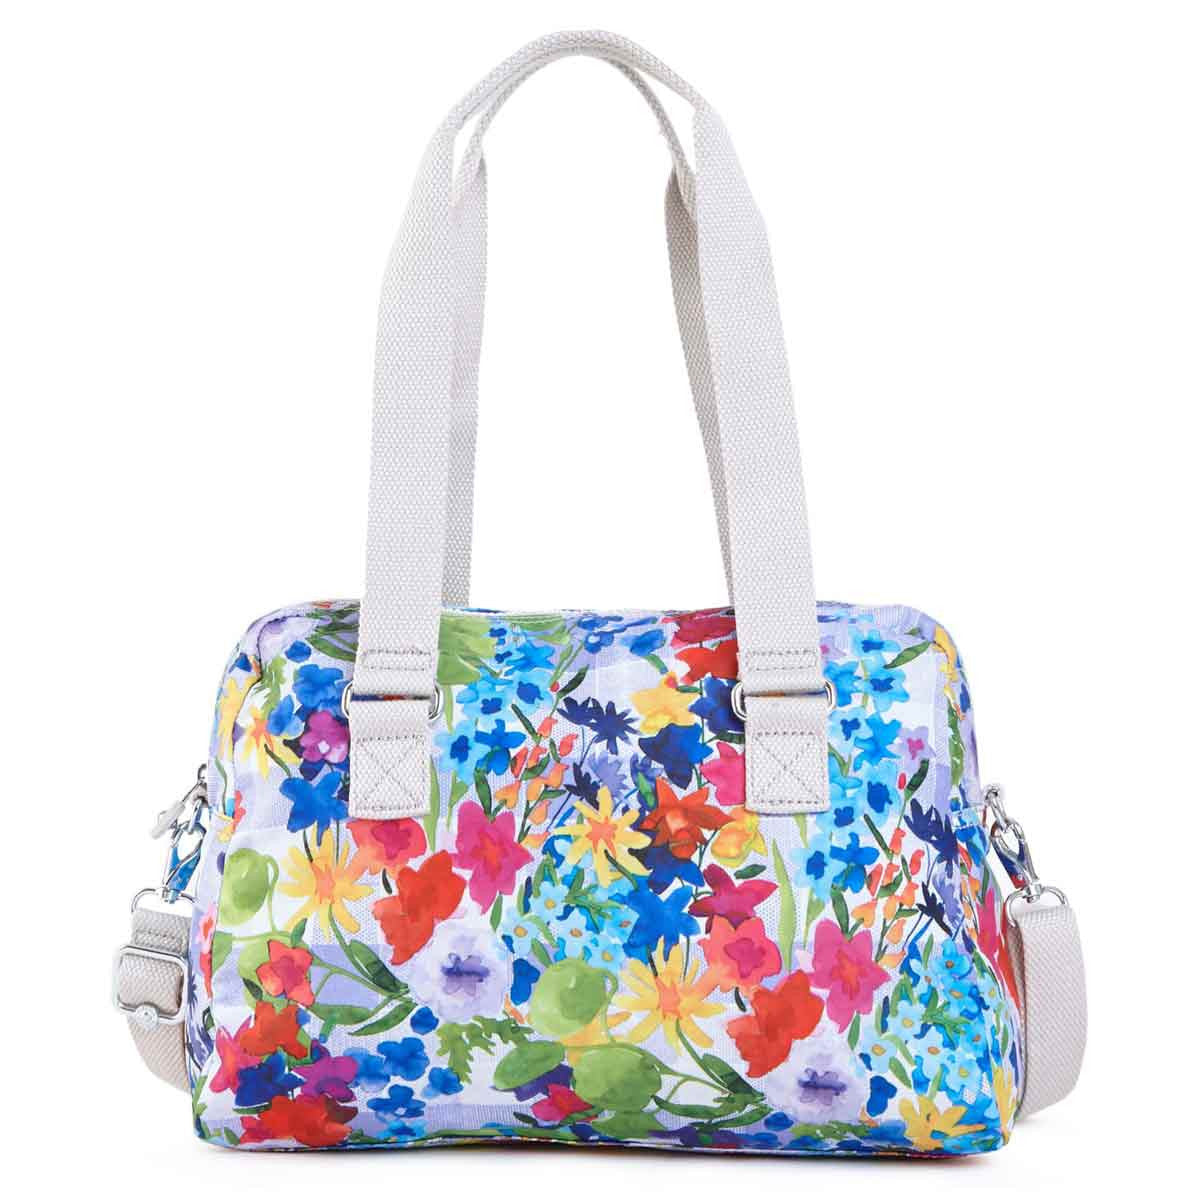 Kipling HB6613-943 Women's Dania Picnic in the Park Printed Polyester Handbag